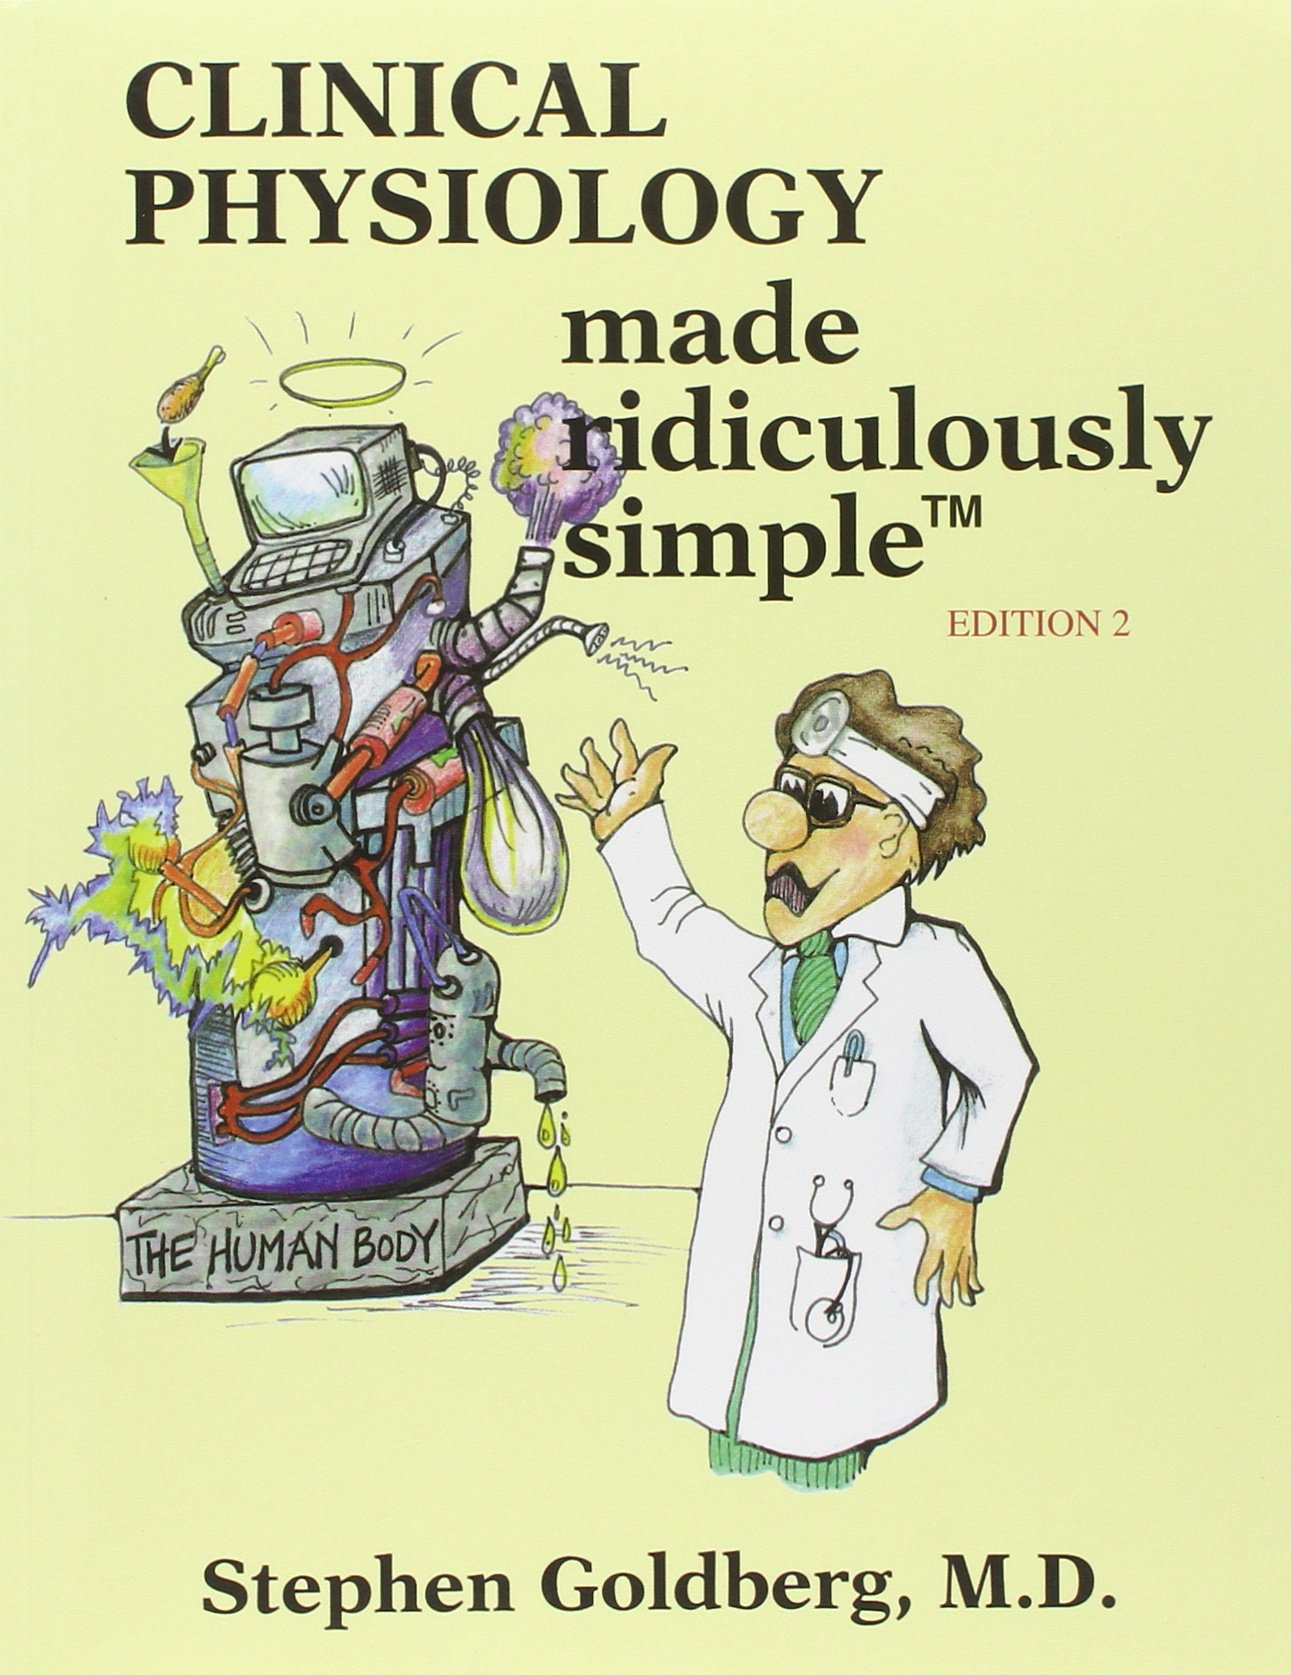 Clinical Physiology Made Ridiculously Simple Paperback – Jul 1 2010